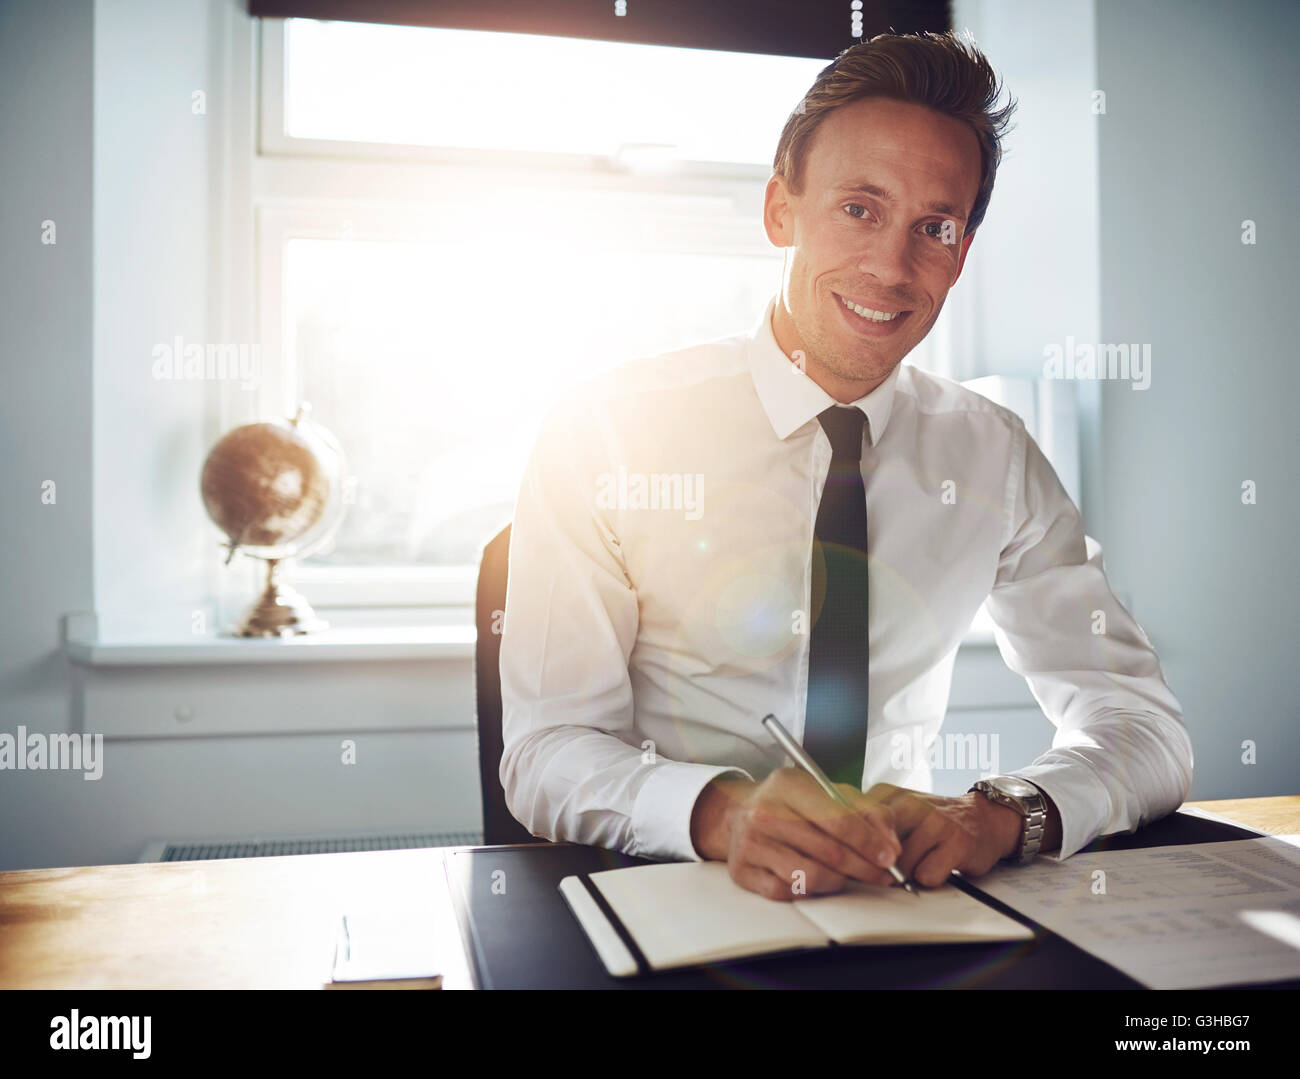 Business man executive writing notes while smiling at the camera, wearing white shirt and tie - Stock Image